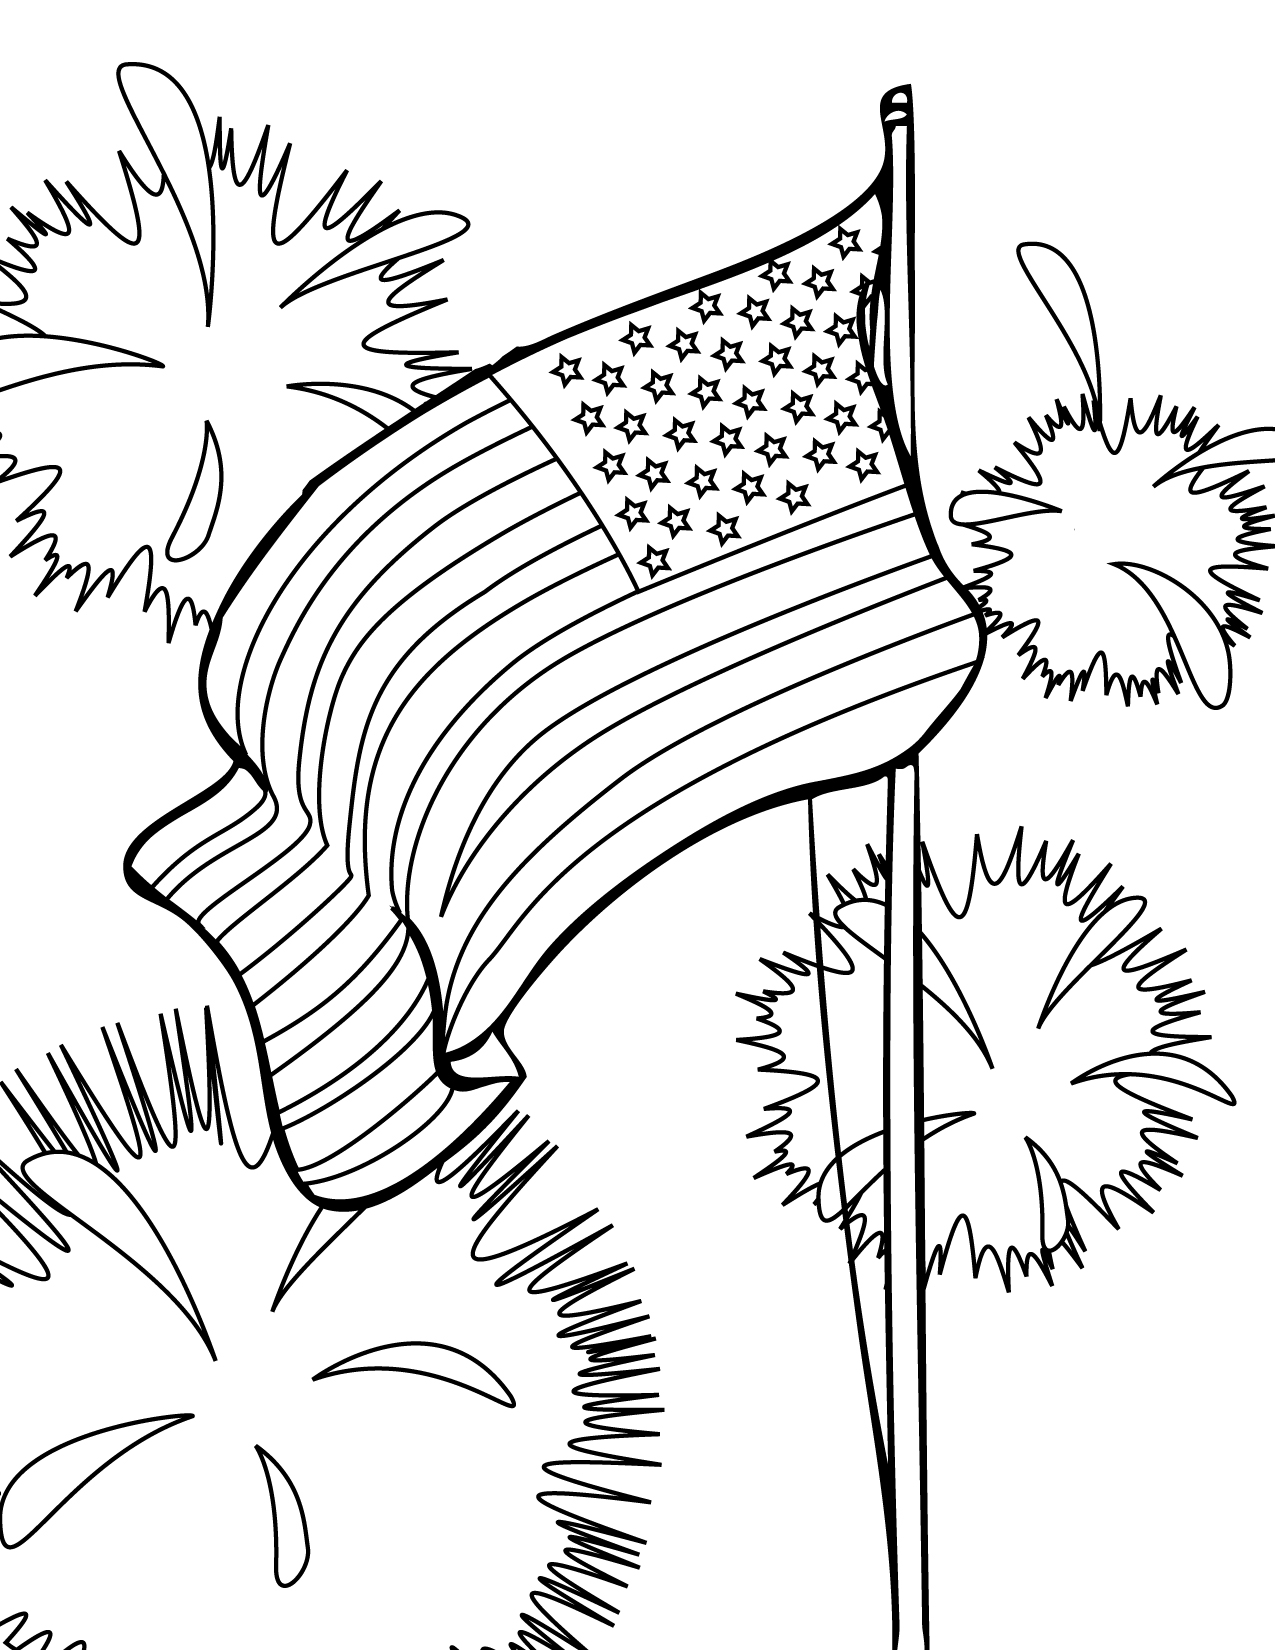 fourth of july coloring pages fourth of july coloring pages part iii july of coloring fourth pages